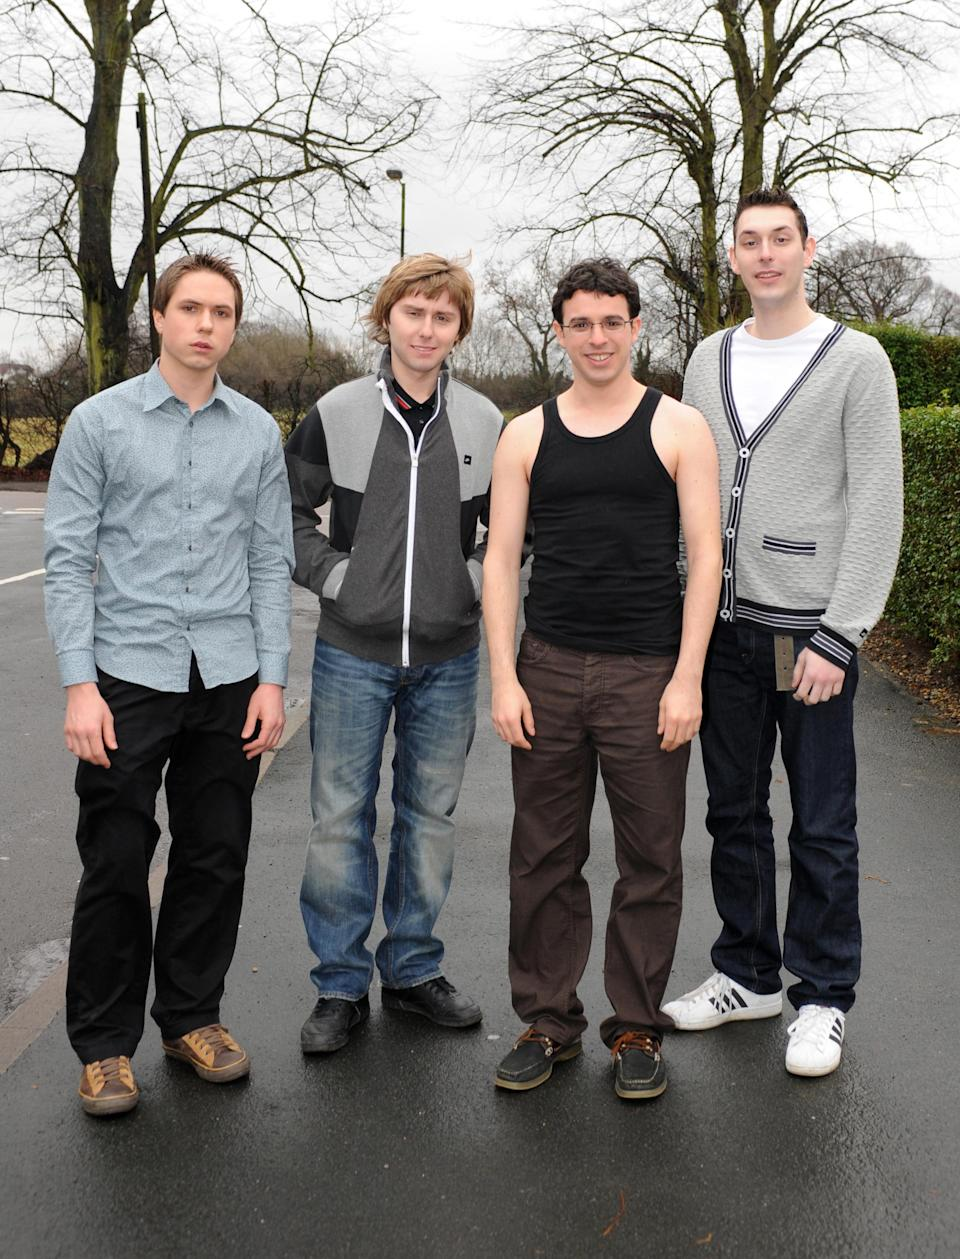 (From L-R) Joe Thomas, who plays Simon Cooper, James Buckley, who plays Jay Cartwright, Simon Bird, who plays Will McKenzie, and Blake Harrison, who plays Neil Sutherland, during the filming of the forthcoming E4 comedy series 'The Inbetweeners' in Bushey, Hertfordshire.   (Photo by Ian West - PA Images/PA Images via Getty Images)